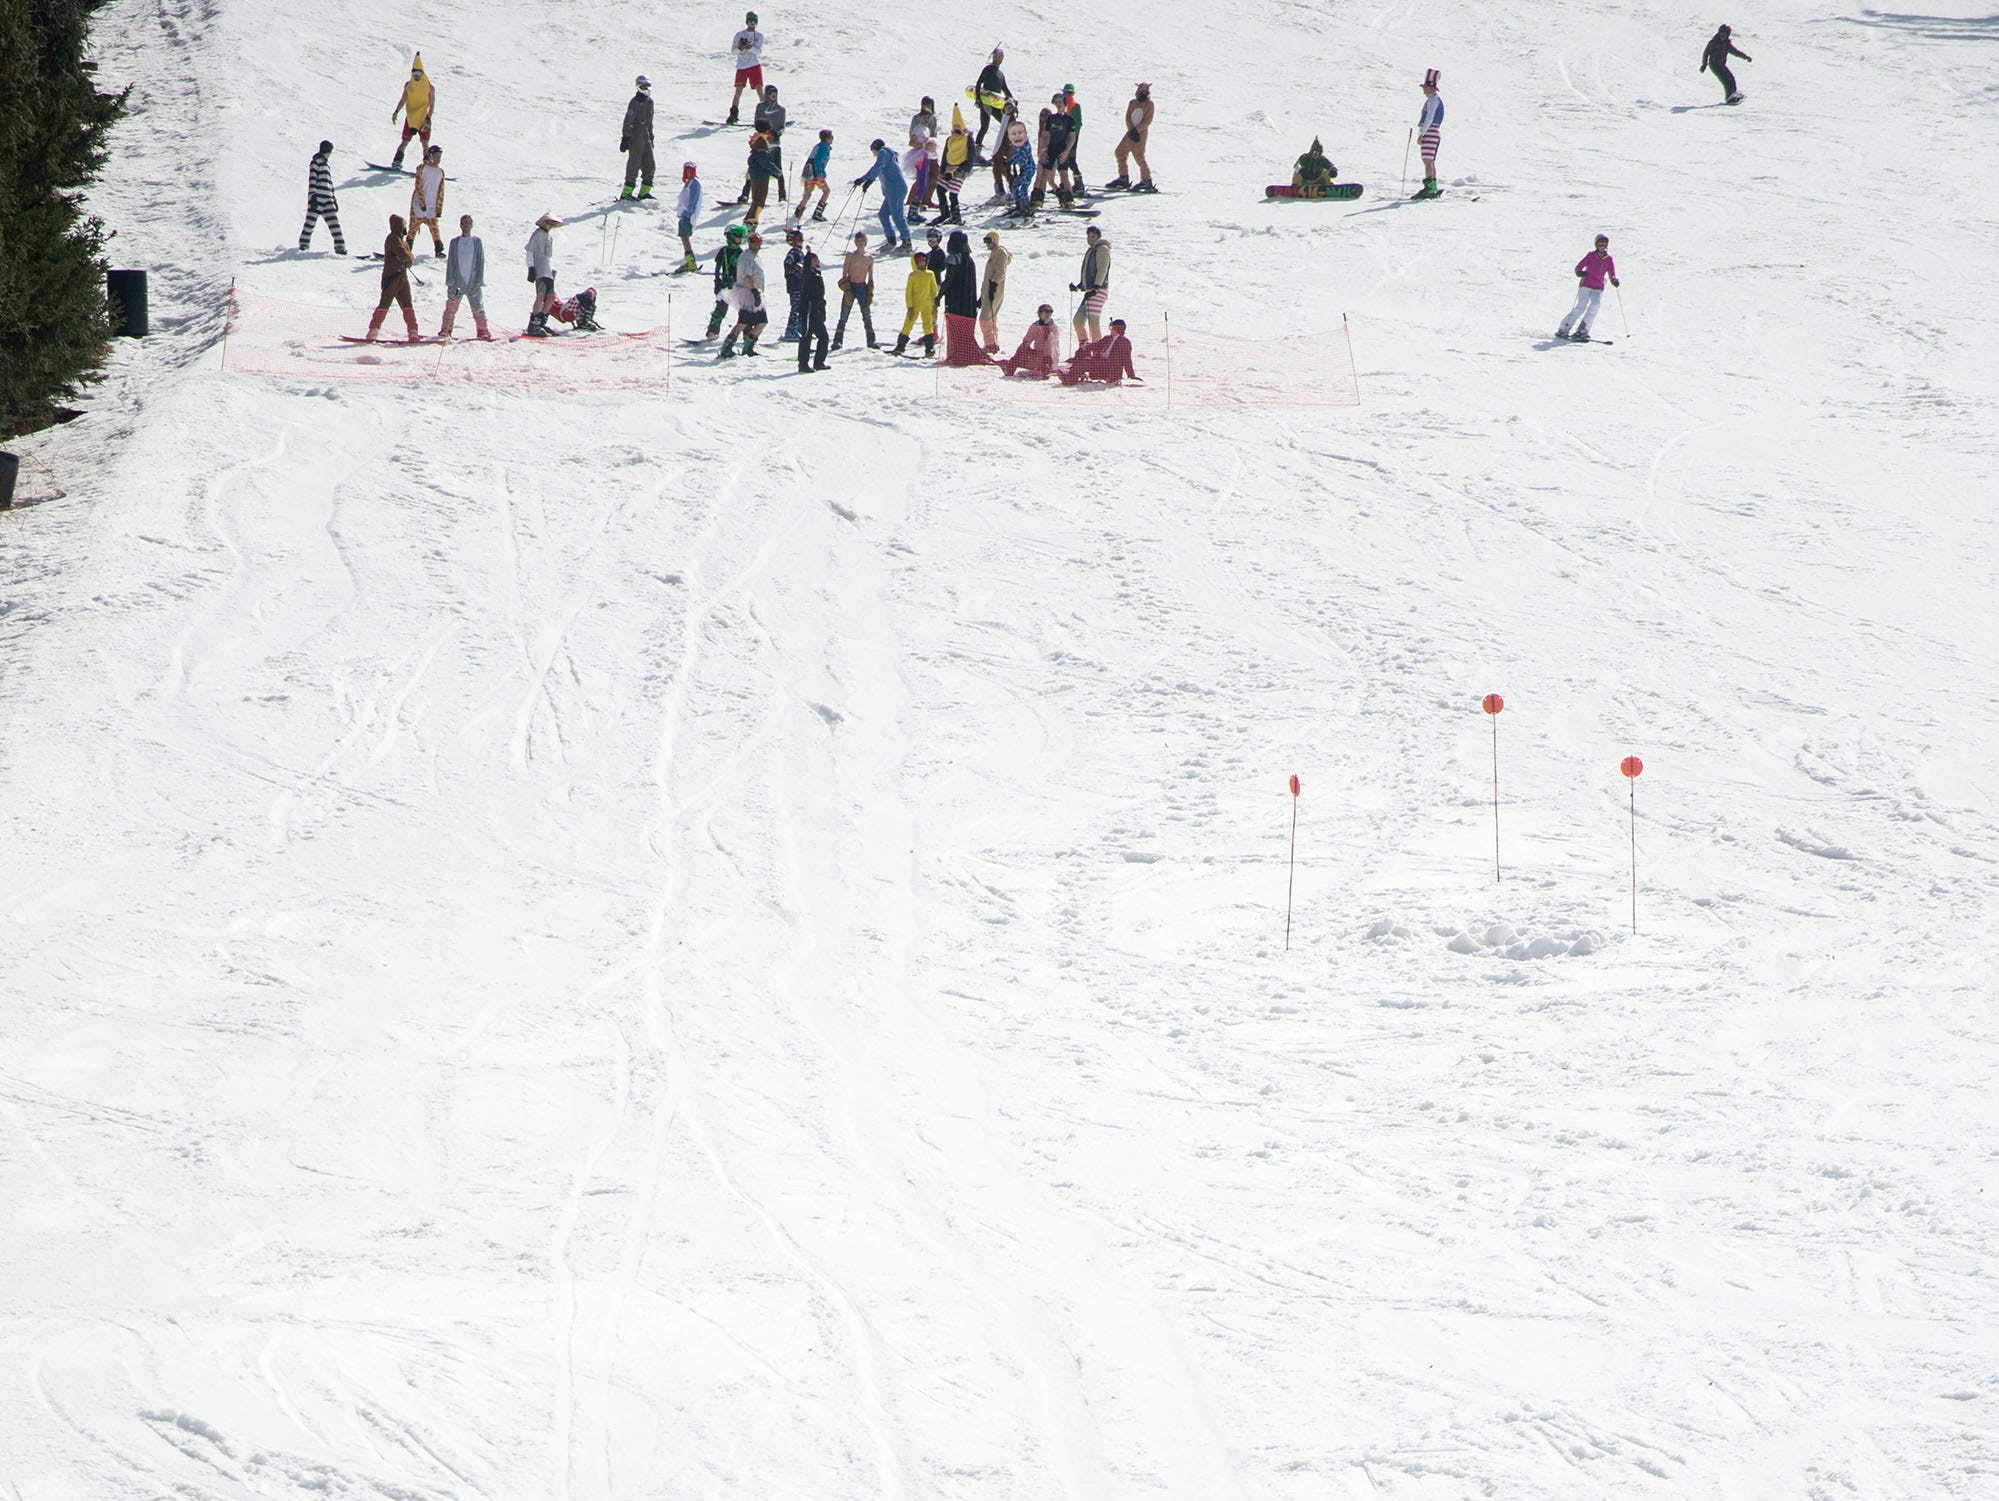 Costumed snowboarders and skiers took off from the midway point on the Minuteman Run at Roundtop Mountain Resort and tried to skim across an approximately 80-foot long pond (foreground) on Saturday, March 16, 2019.